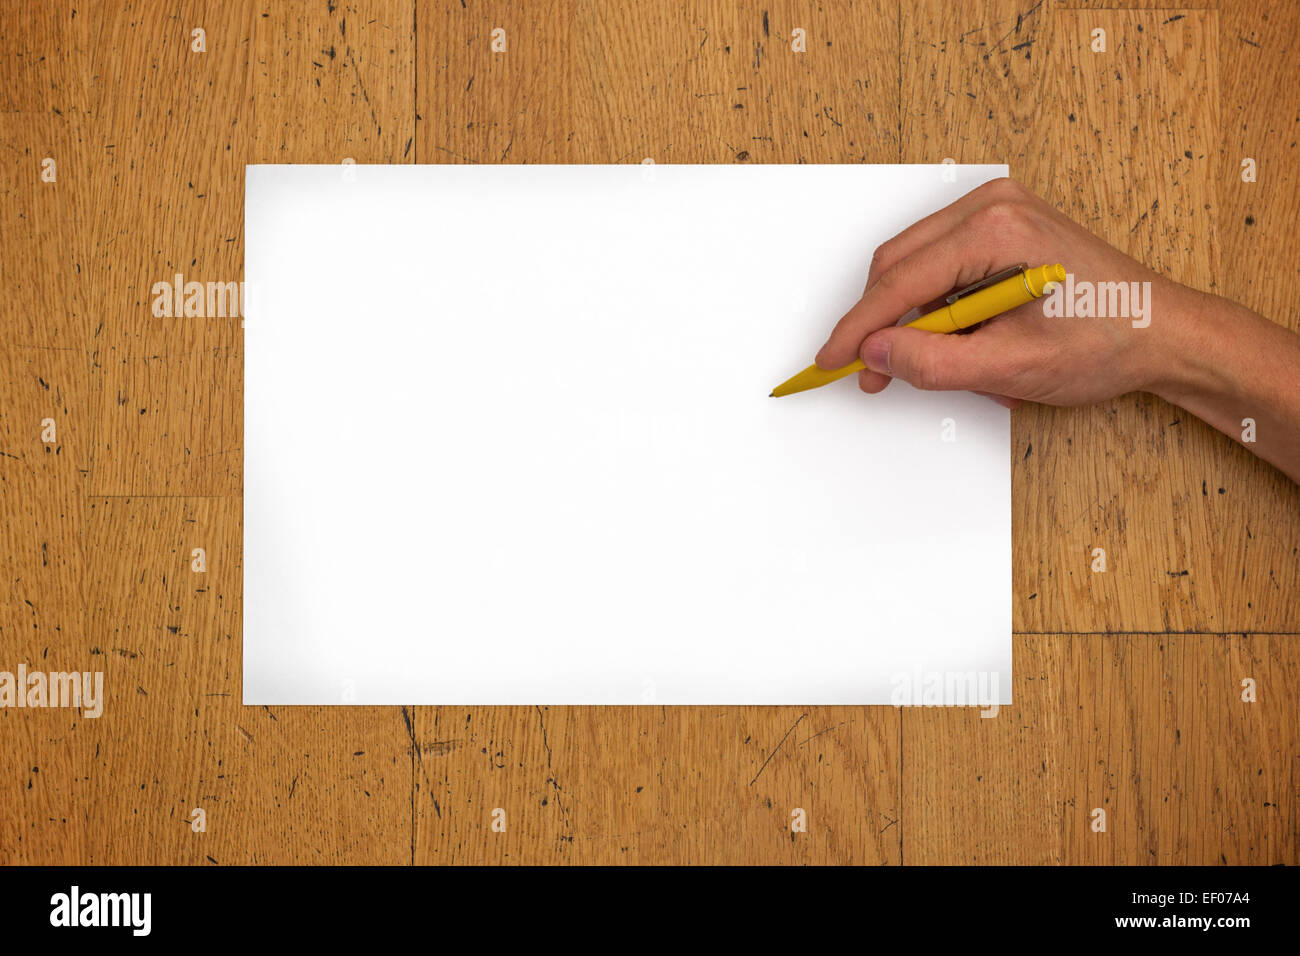 Hand holding pen on a blank white paper sheet (in horizontal position) on a worn wooden table surface, viewed from - Stock Image